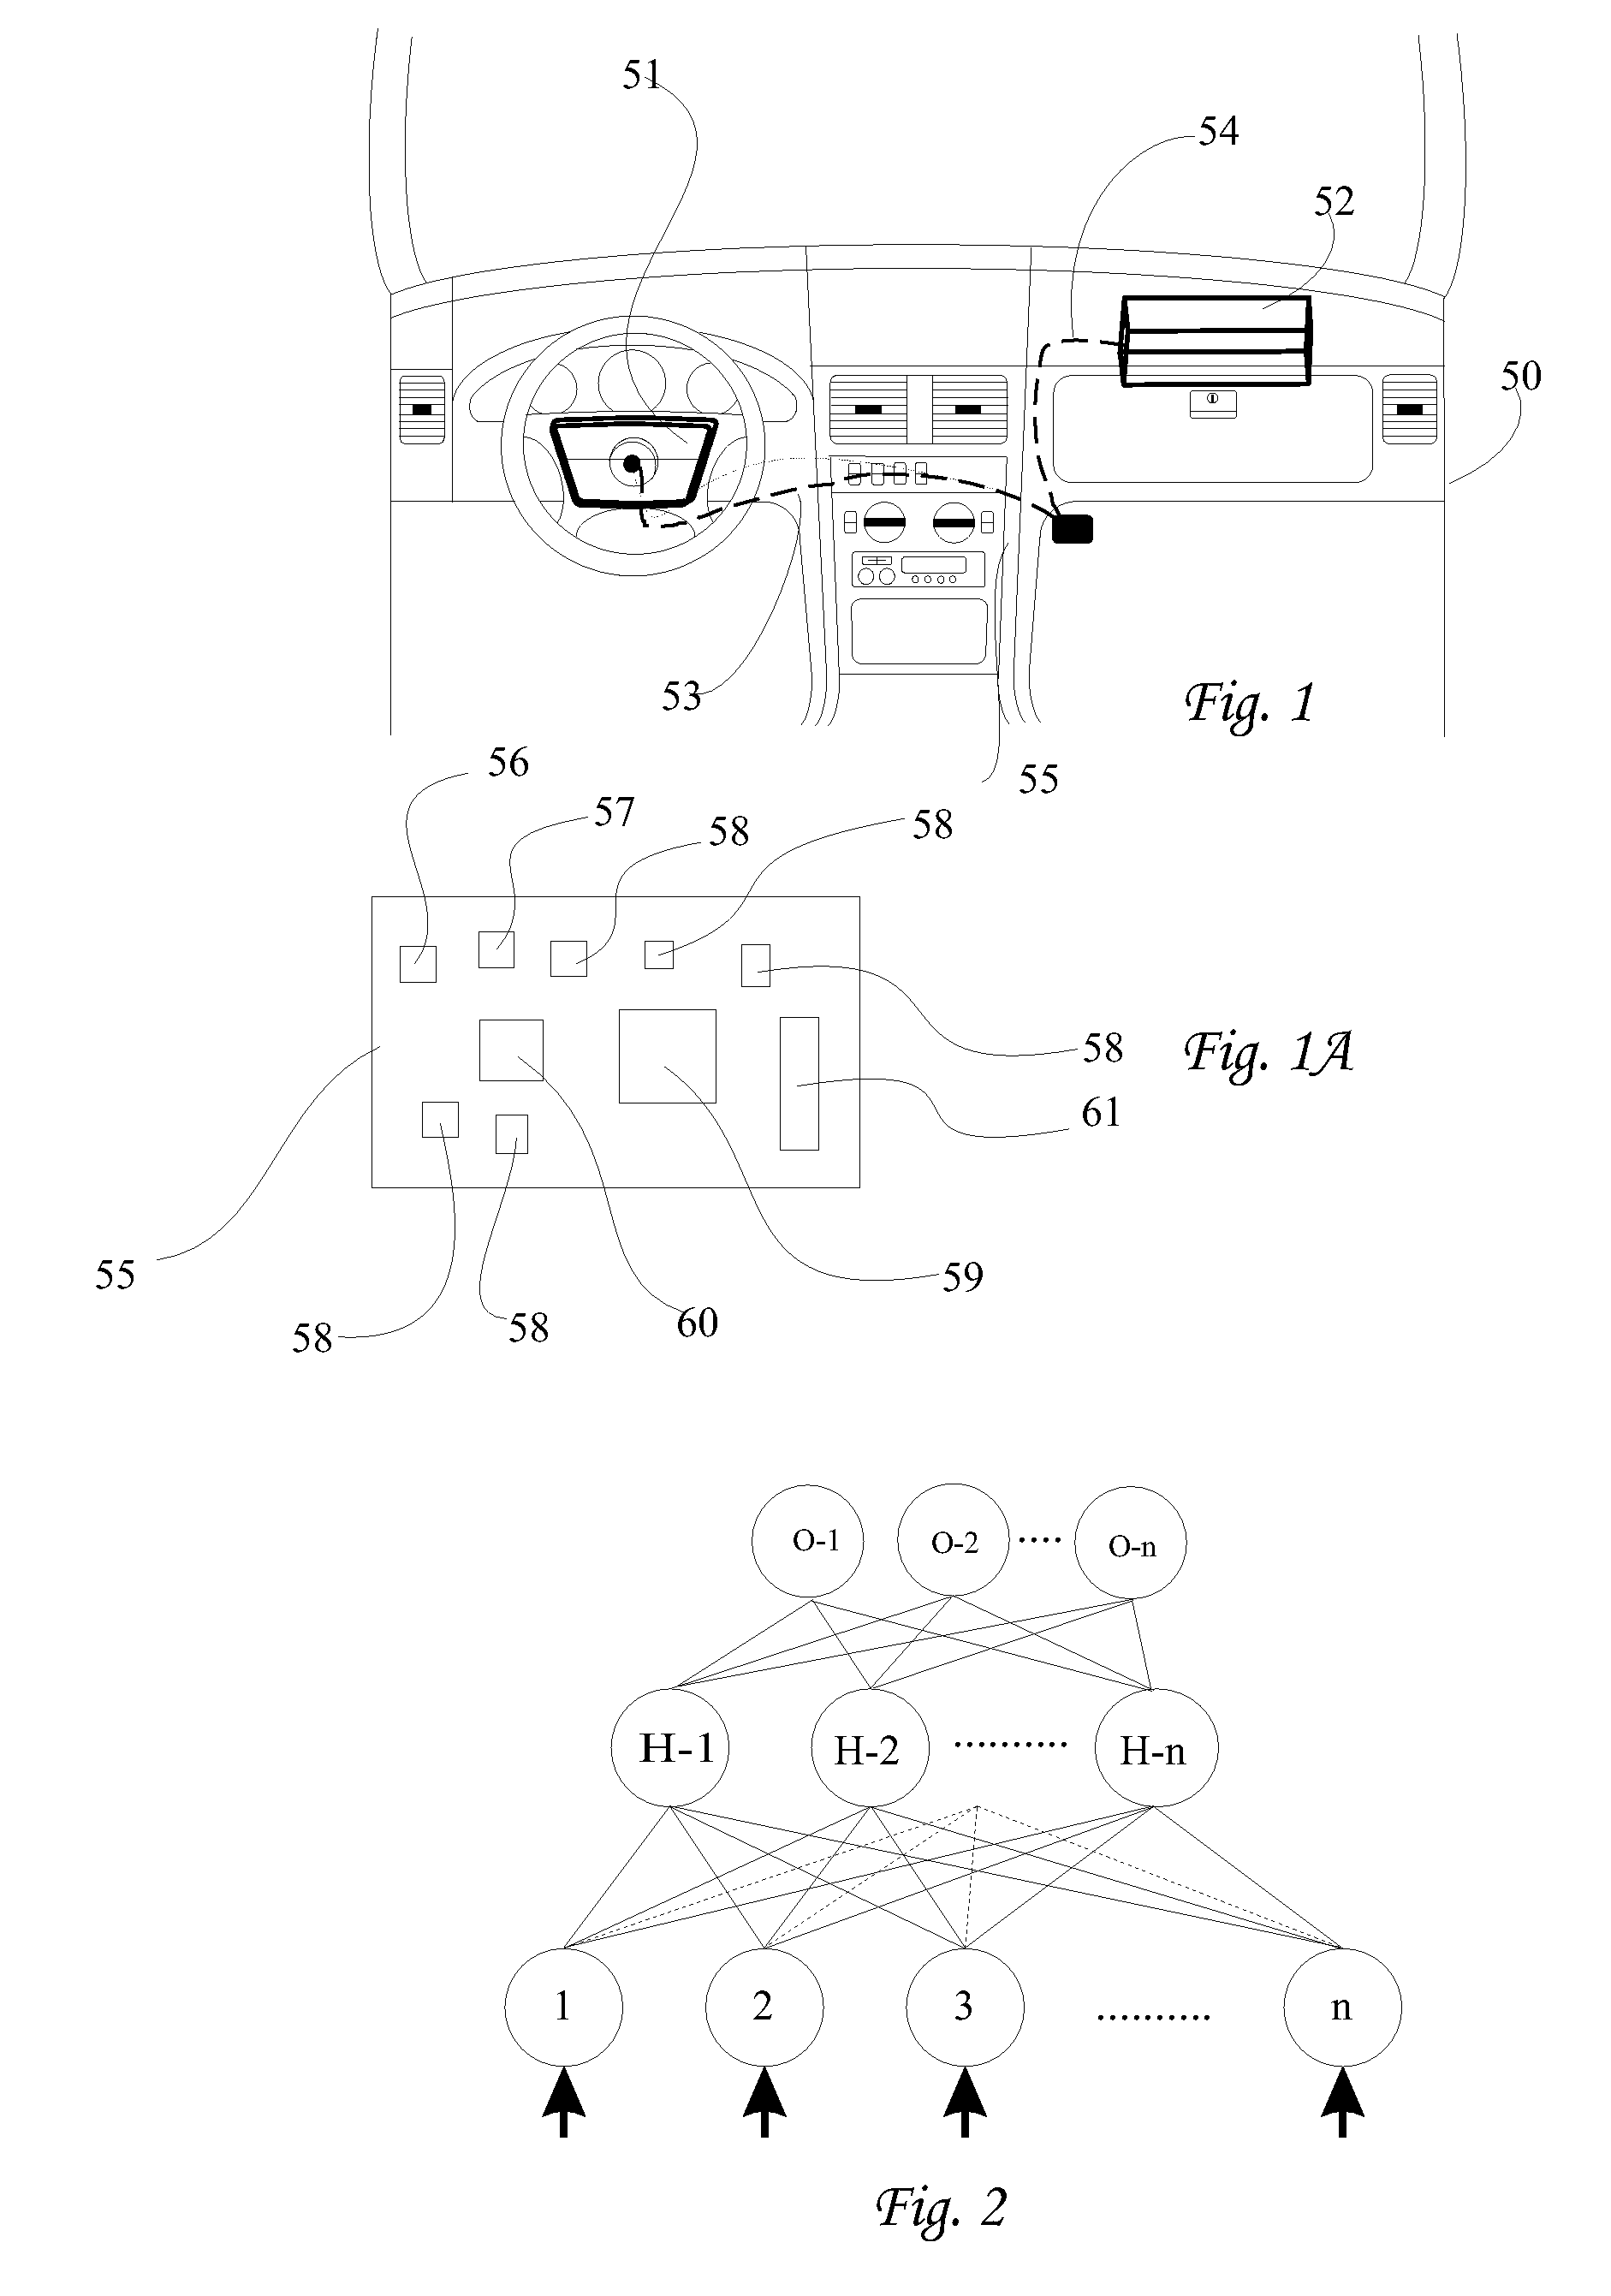 hight resolution of patent us 7 744 122 b2 peugeot 207 engine diagram furthermore reflected ceiling plan symbols